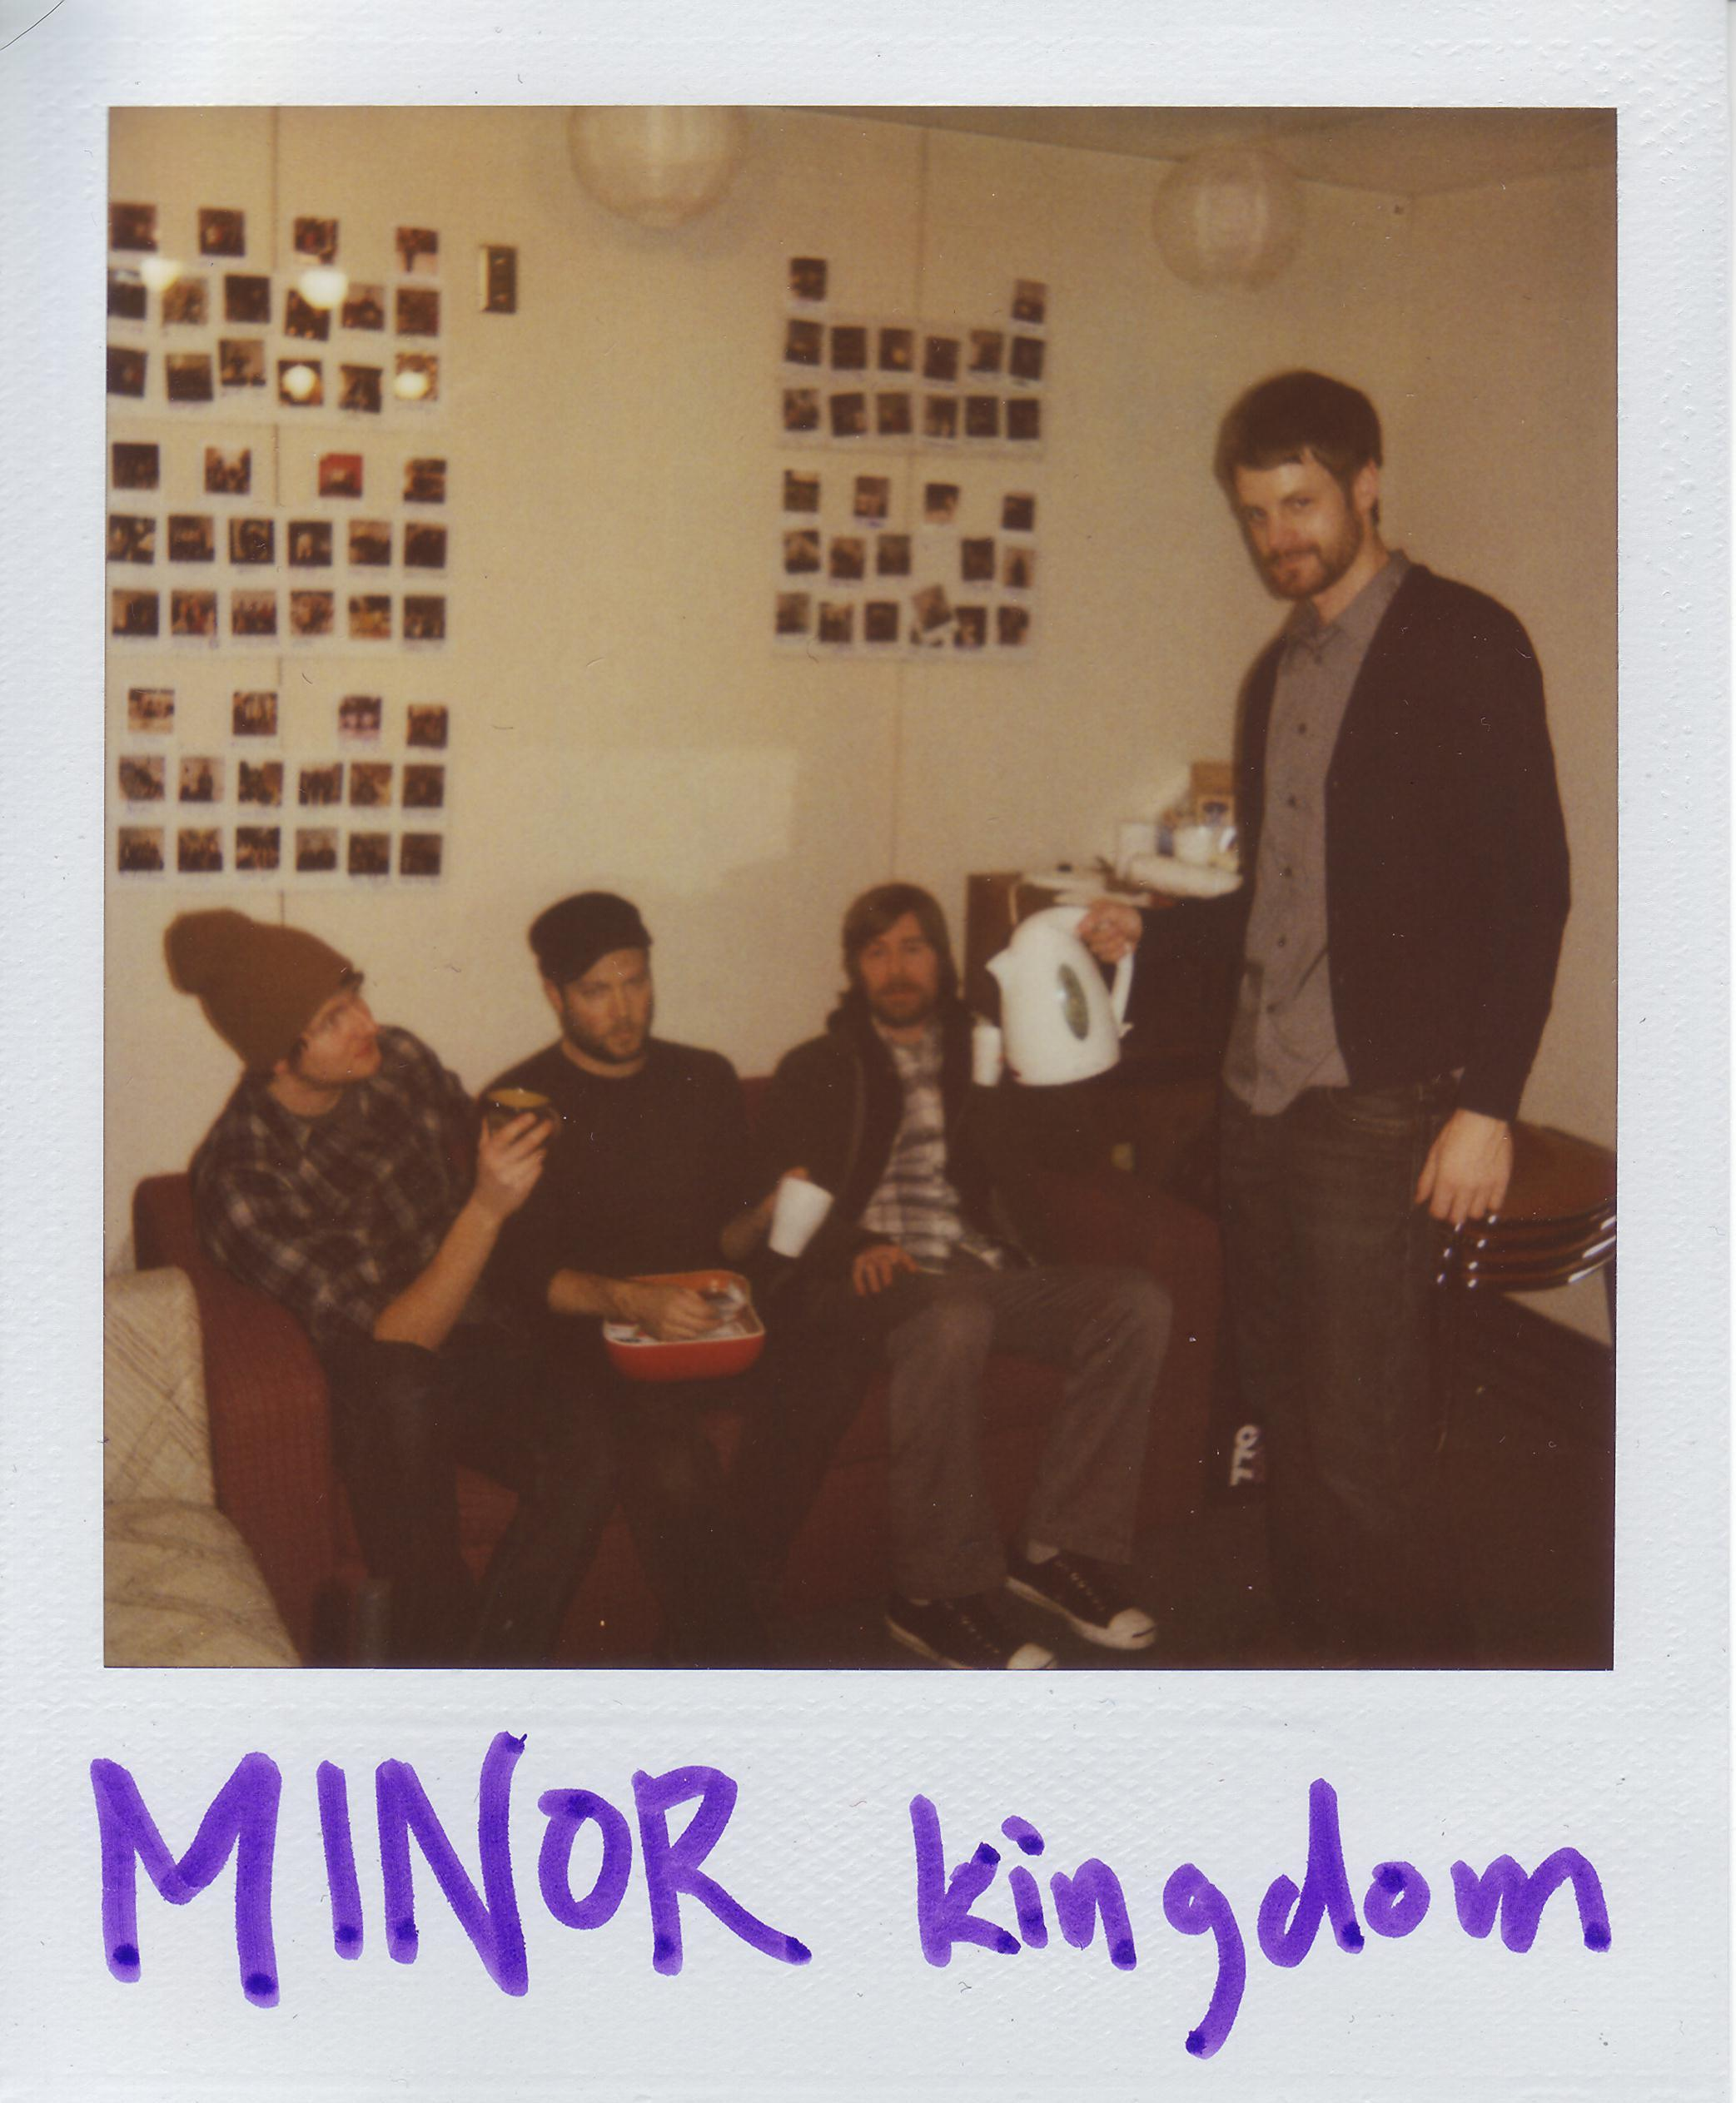 Minor Kingdom